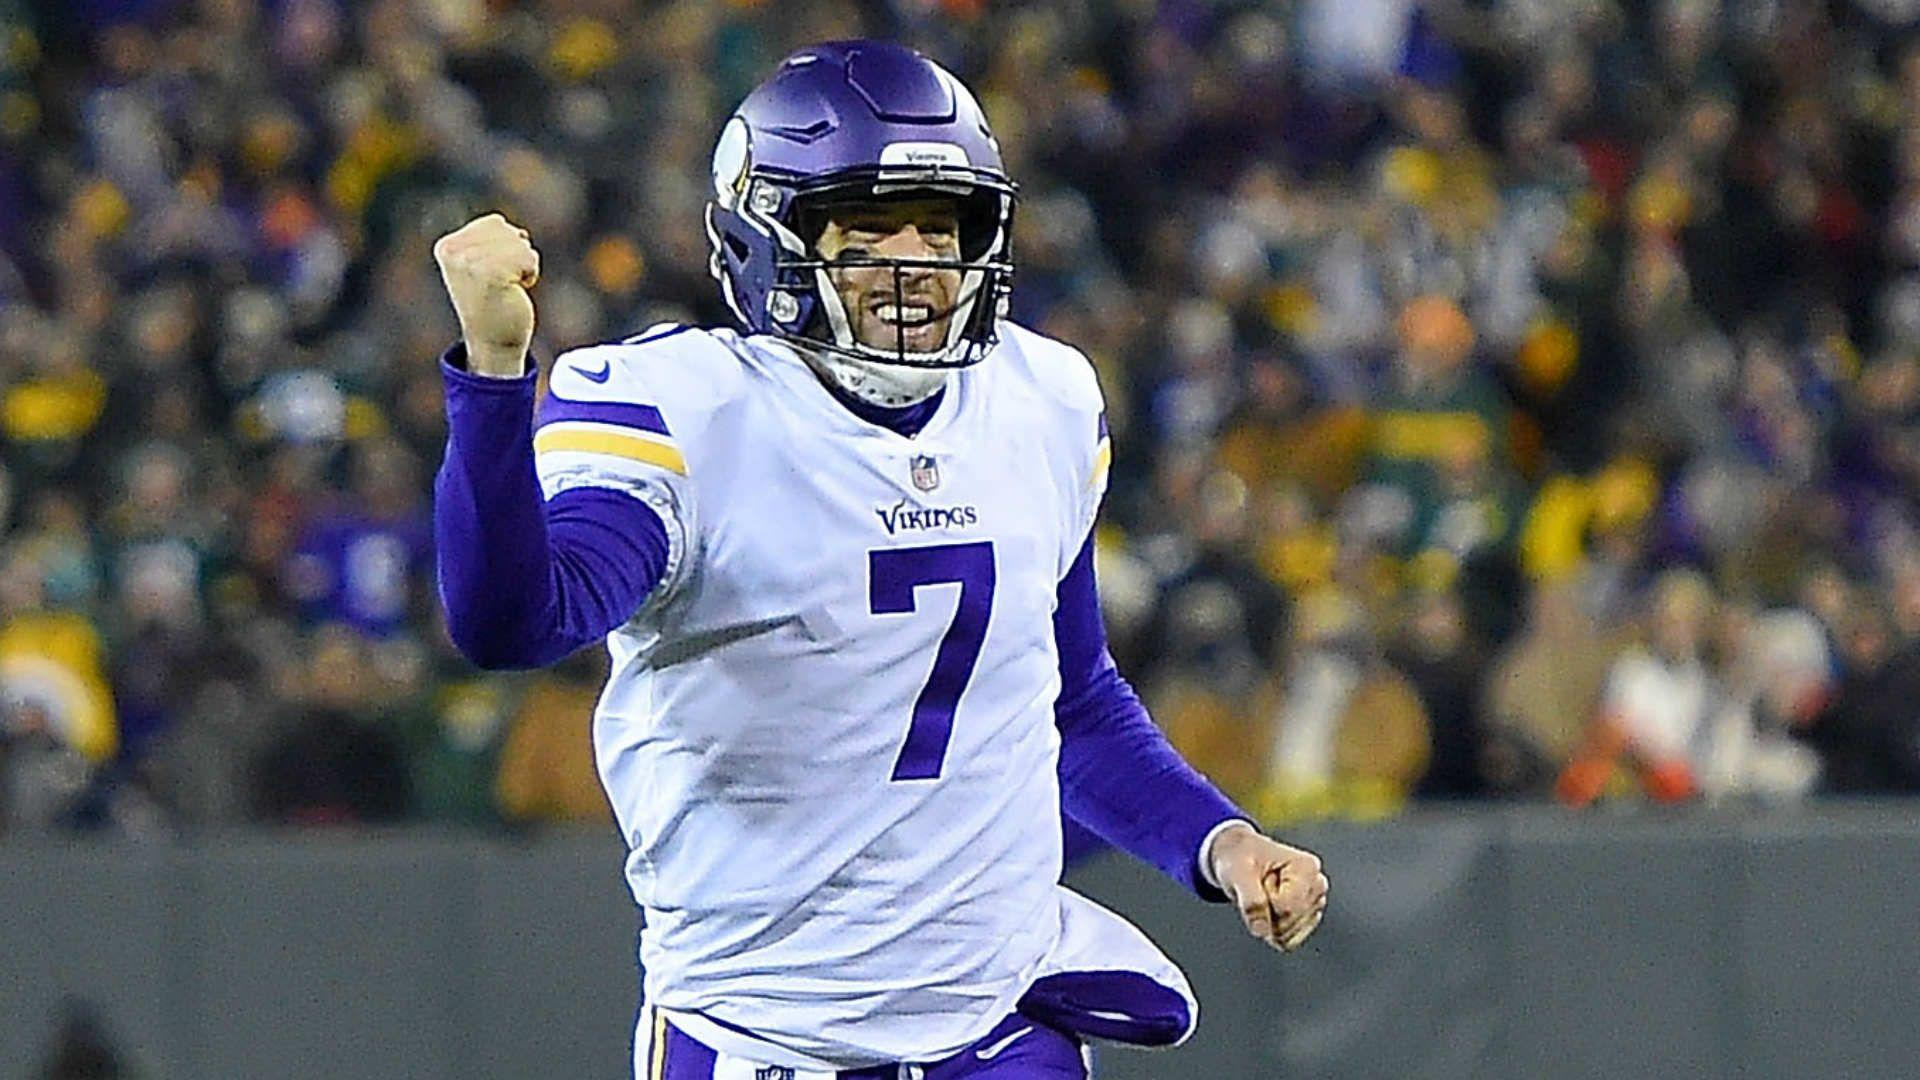 Three takeaways from Vikings' win over Packers | NFL | Sporting News